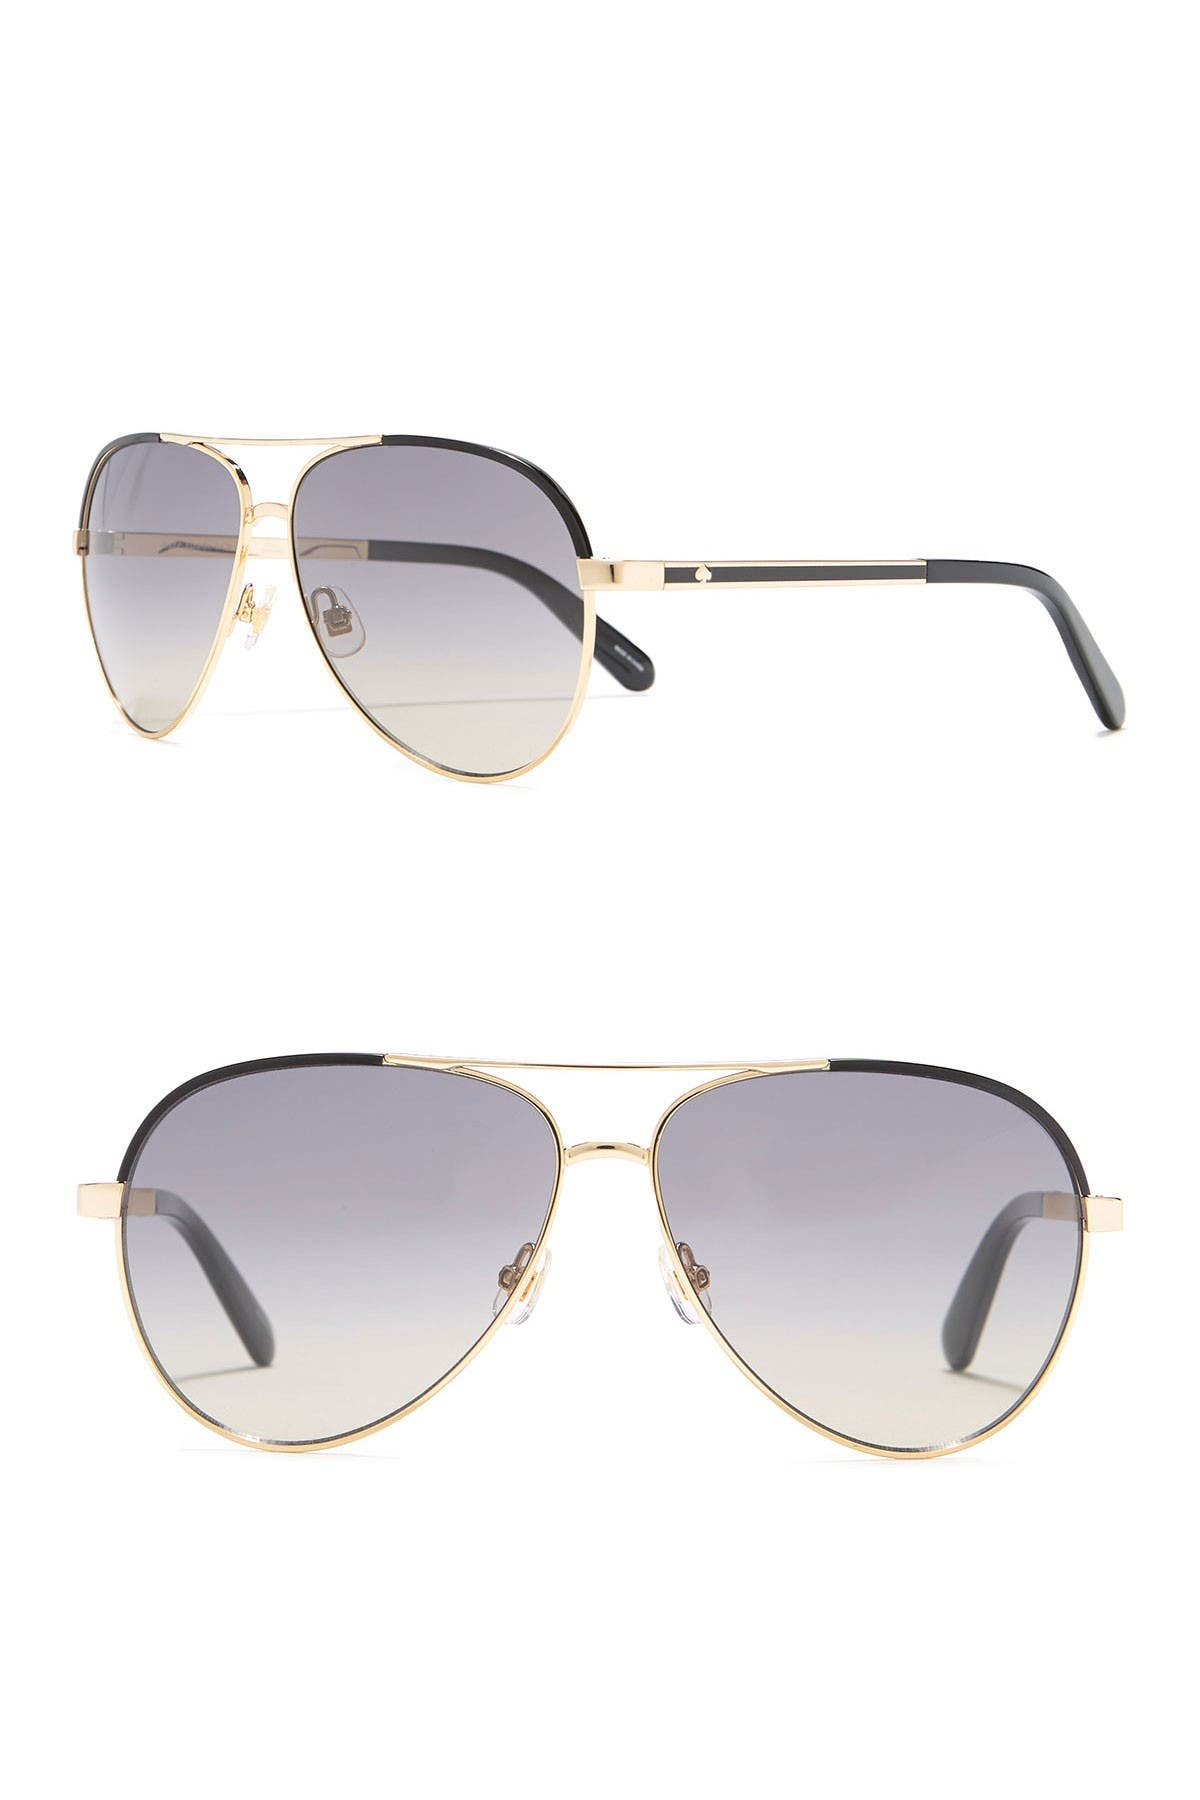 Image of kate spade new york amarissa 59mm aviator sunglasses